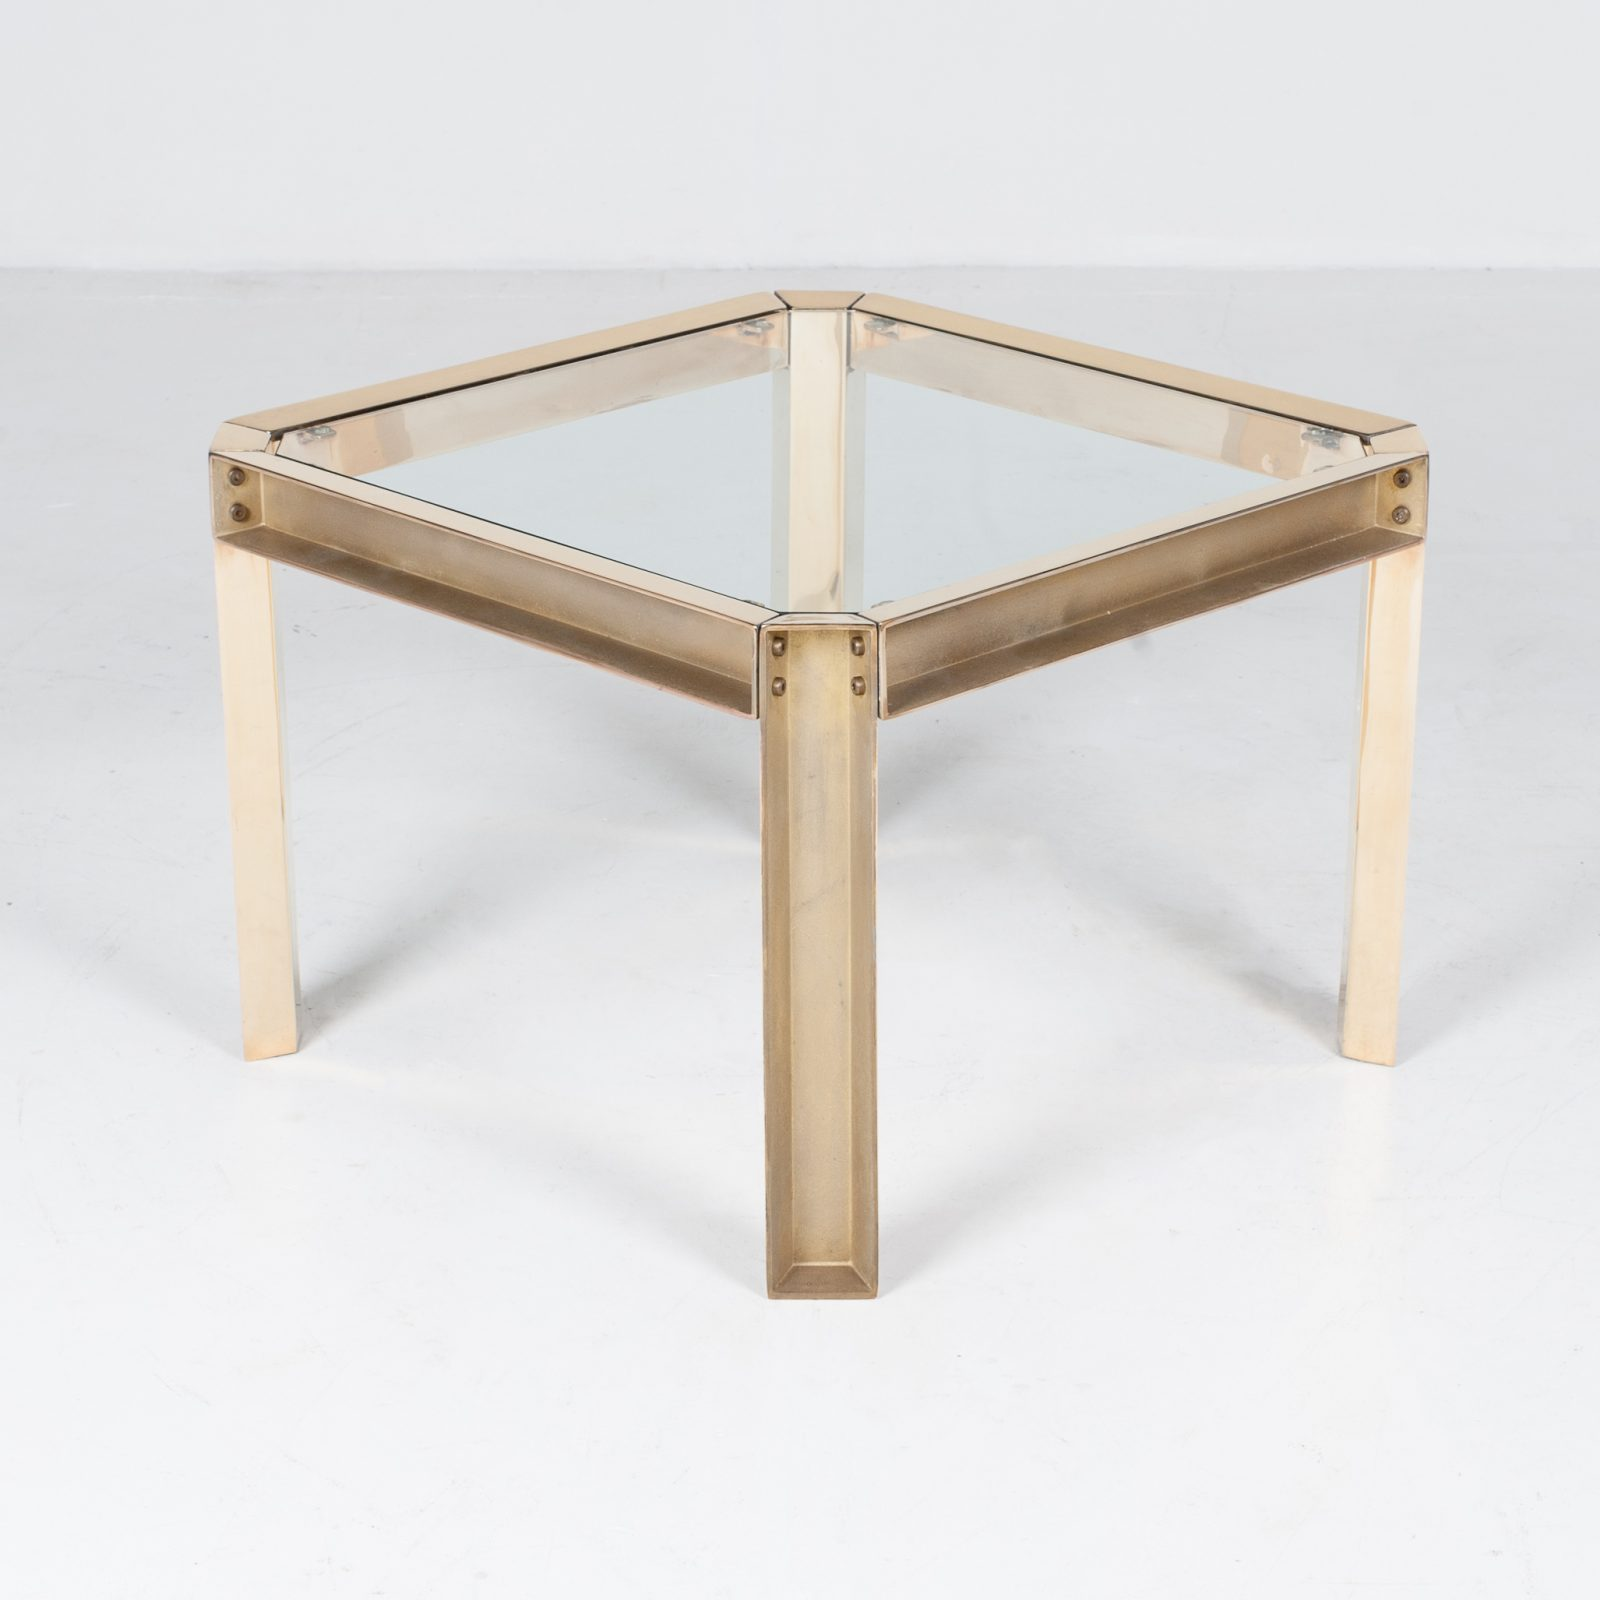 Square Side Table With Clear Glass Top By Peter Ghyczy, 1970s, The Netherlands 37